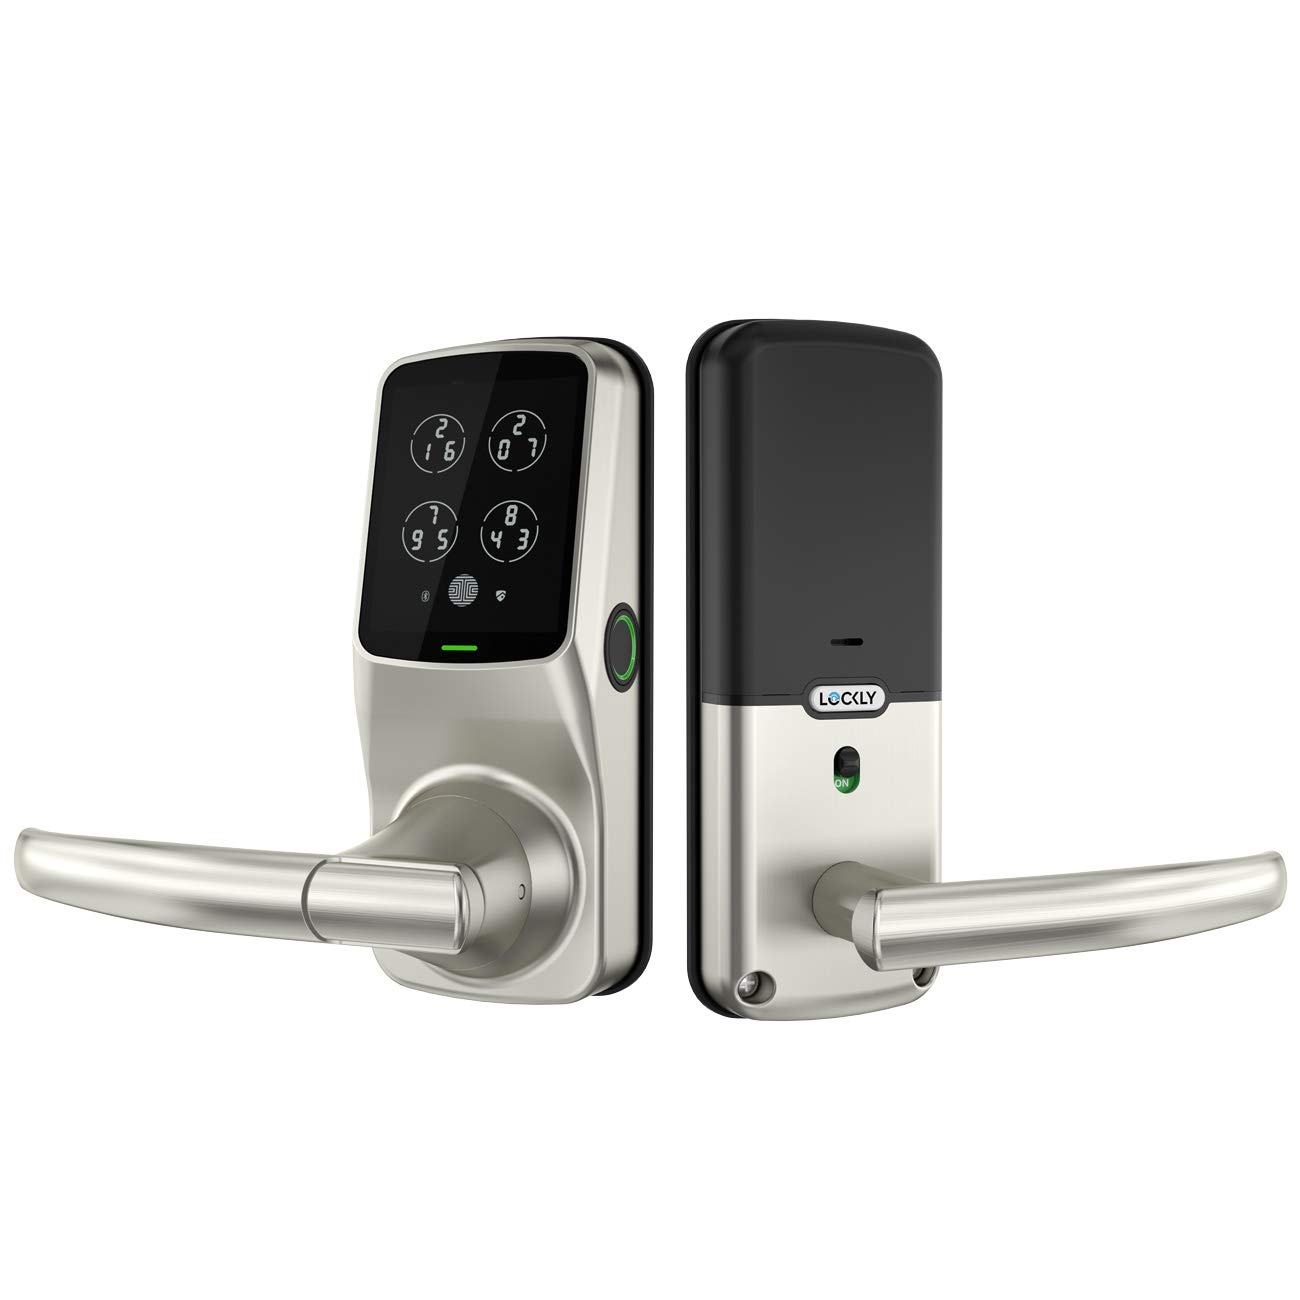 Lockly Fingerprint Bluetooth Keyless Entry Door Smart Lock (PGD628F) | Advanced Electronic Touchscreen System | Discrete PIN Code Input | iOS and Android | Auto Lock | Latch Edition (SatinNickel)